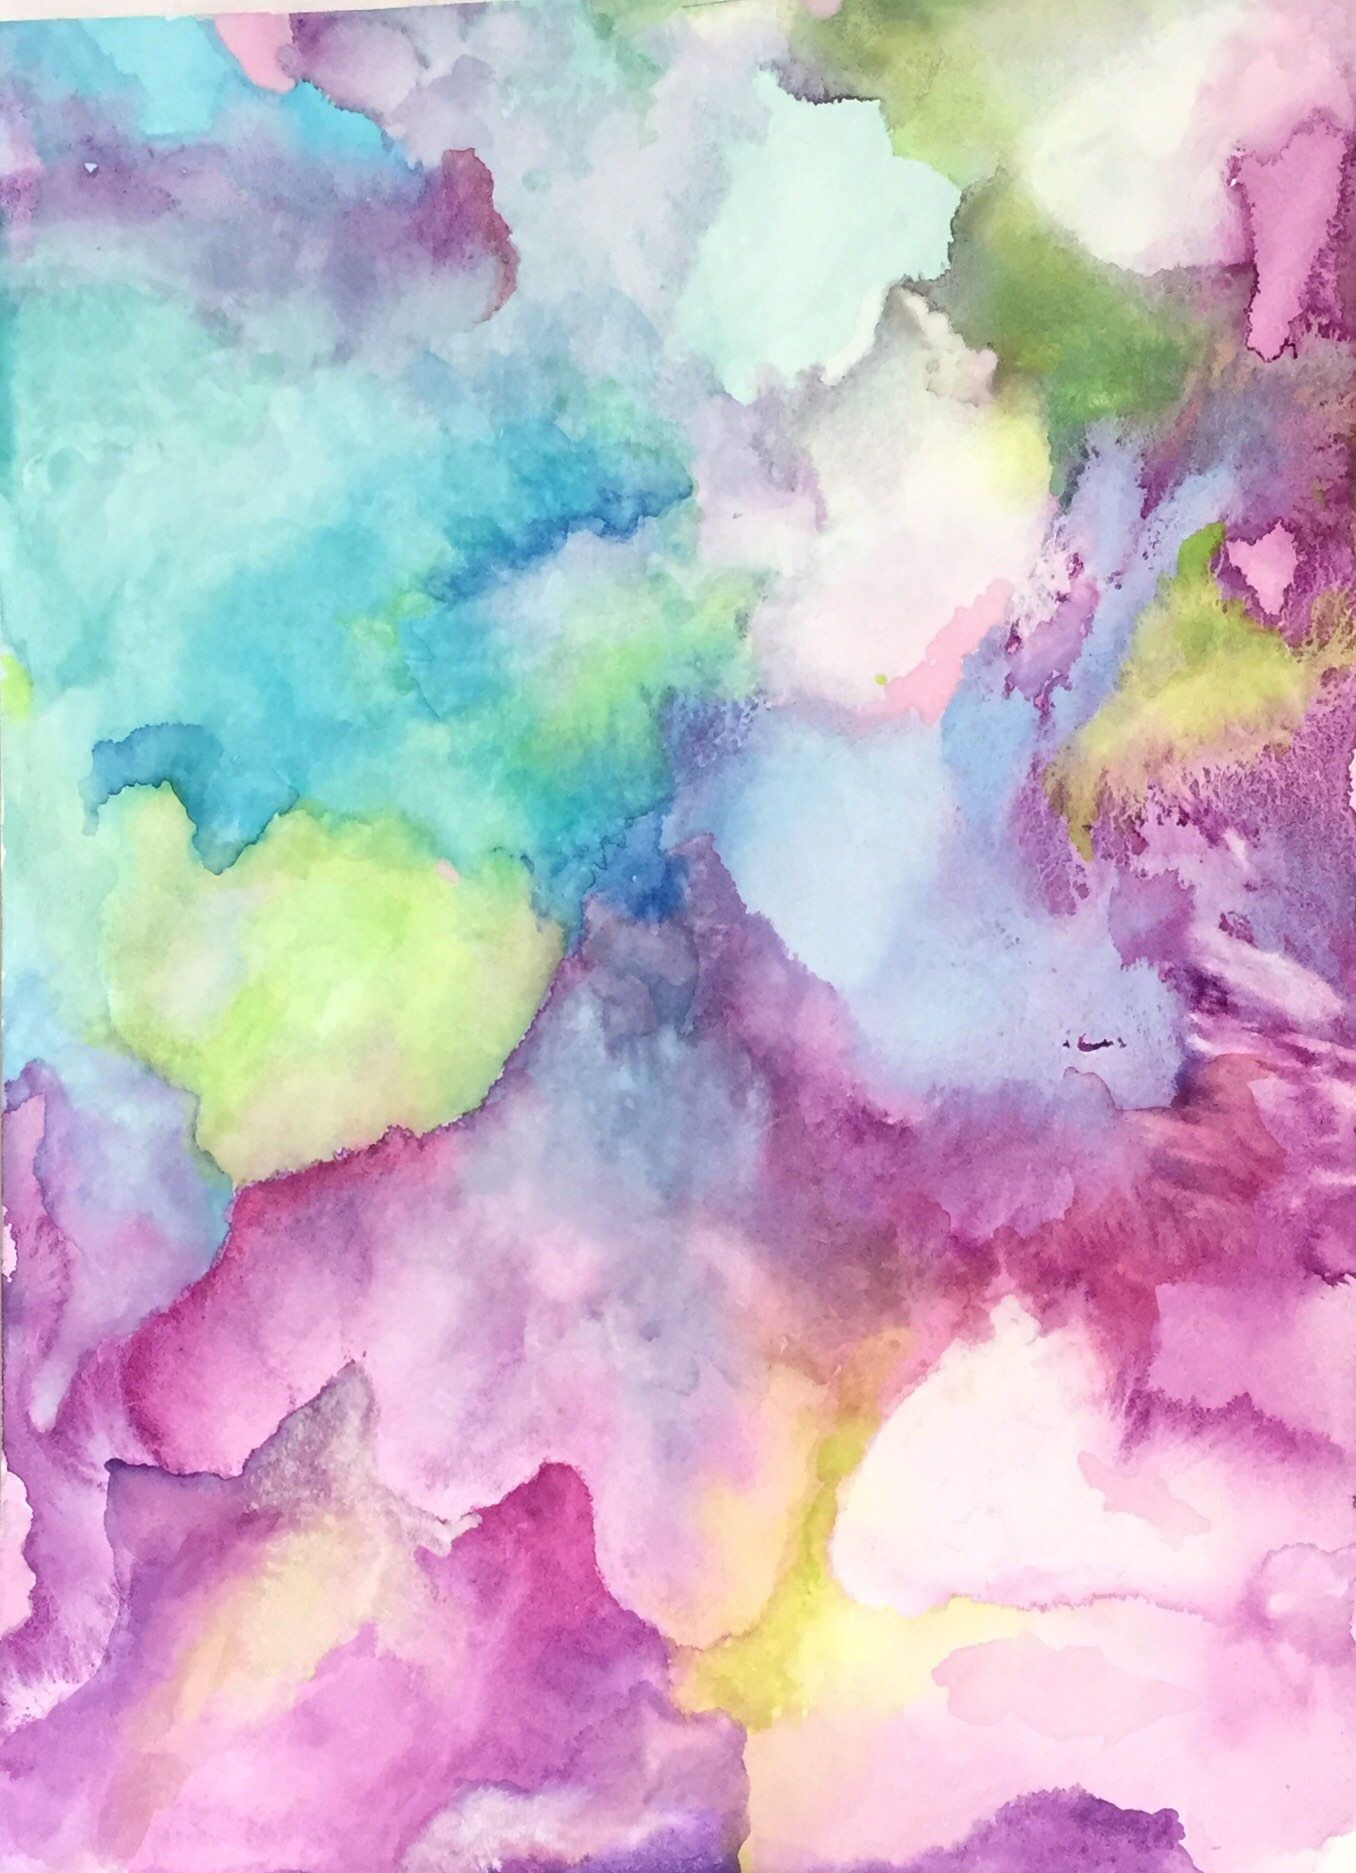 Original Affordable Watercolor Acrylic Abstract Painting 11x15 Unframed Wall Art With Blue Pink Green By Wordsmithstudios On Etsy